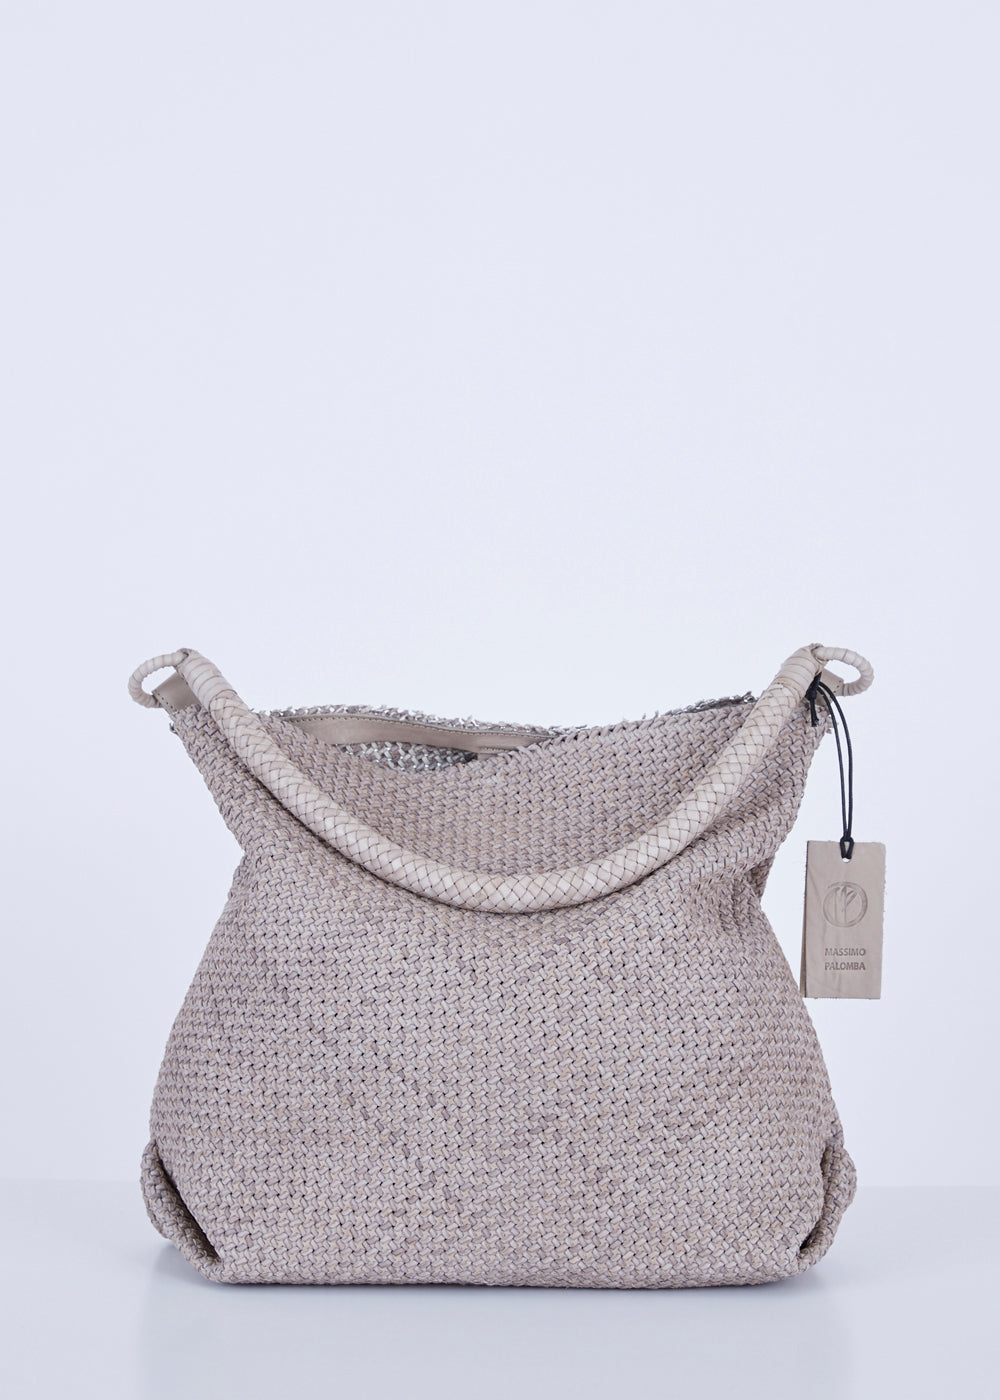 acb1ea1541 Massimo Palomba · Calypso Woven Shoulder Bag ...